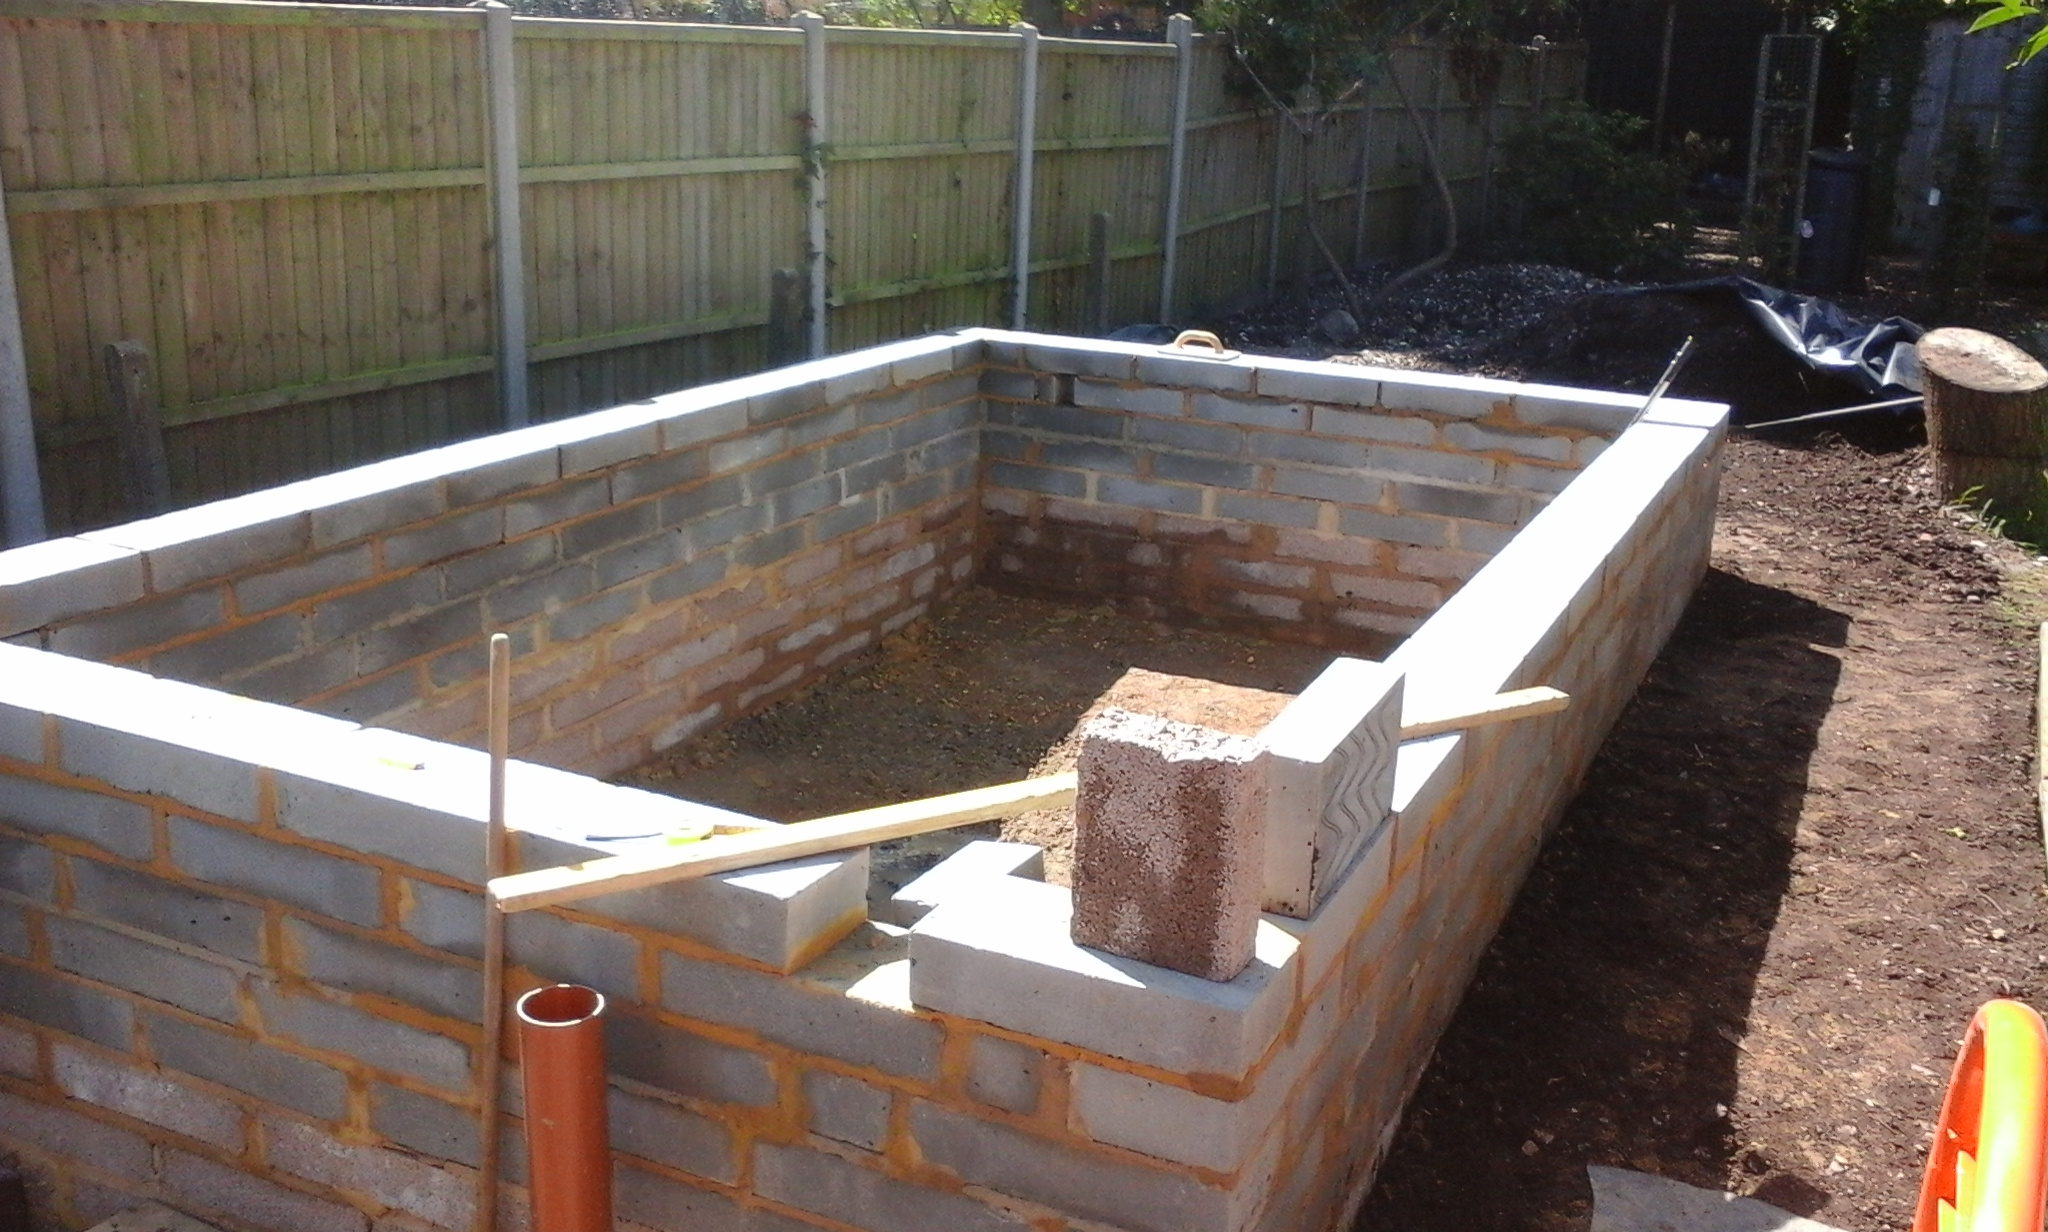 Pond construction pond design pond maintenance pond for Koi pond builders uk